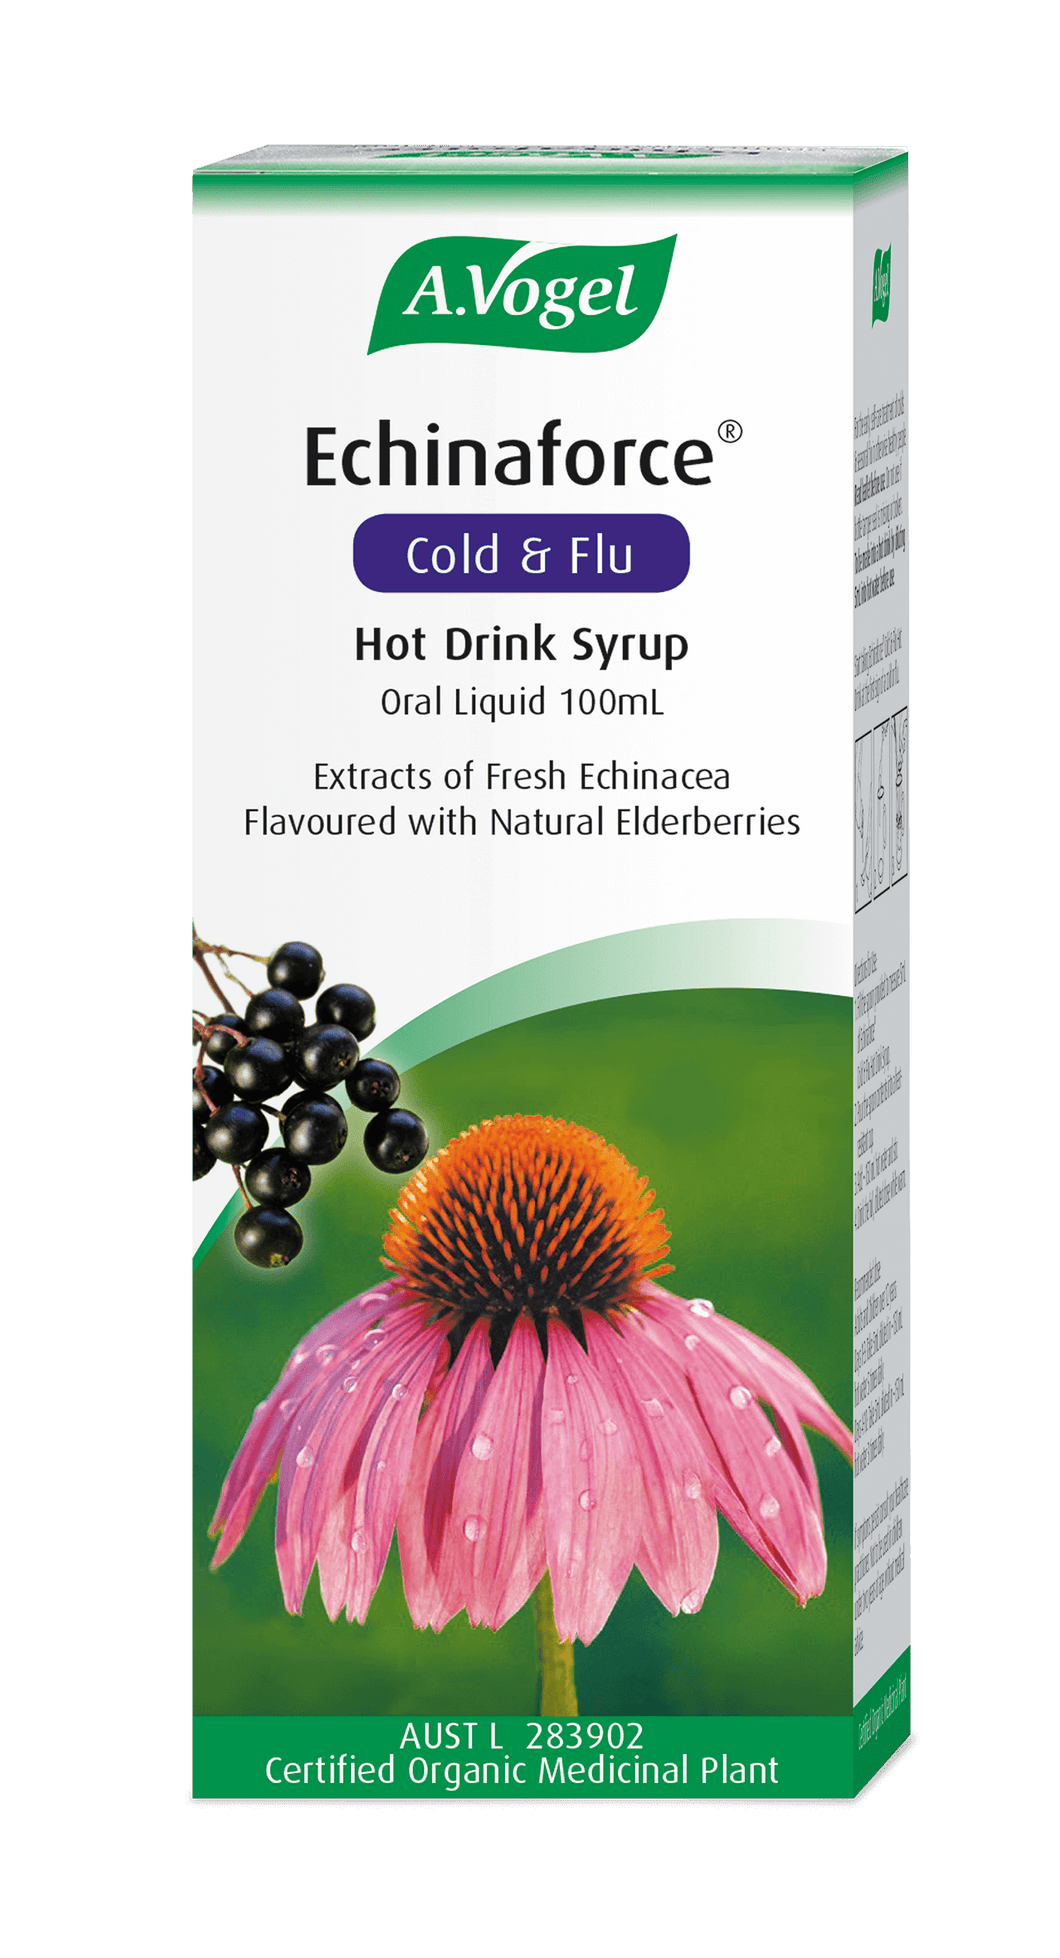 A Vogel Echinaforce Cold and Flu Hot Drink Syrup 100ml